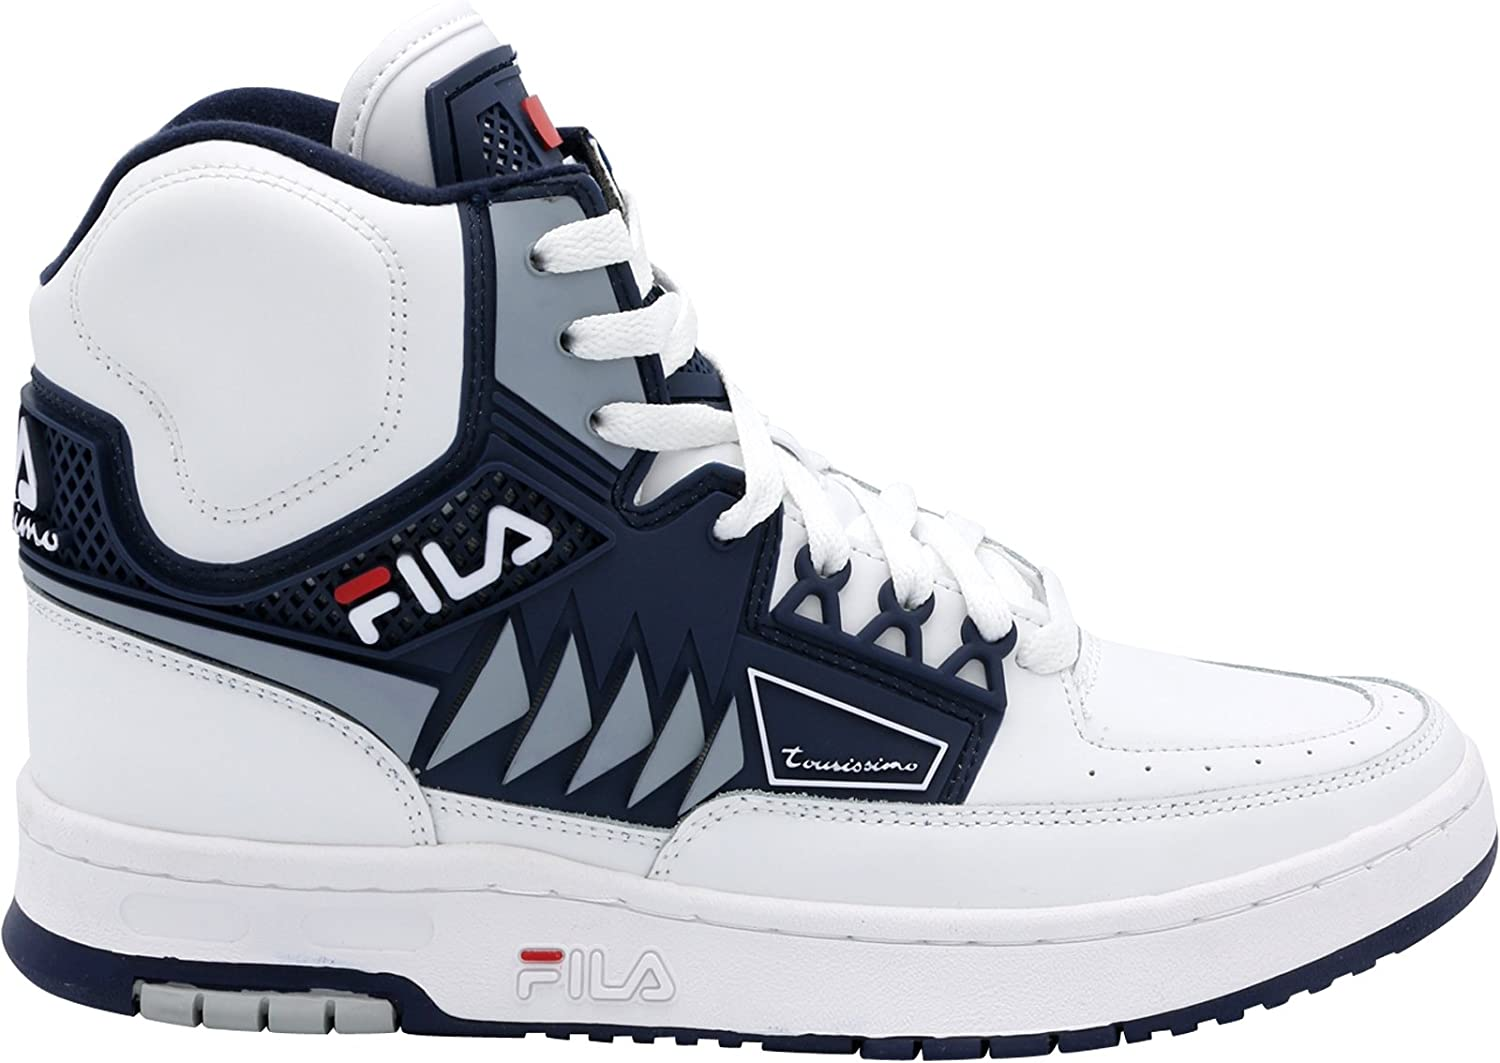 Fila Men's Tourissimo Mid Sneaker White Black